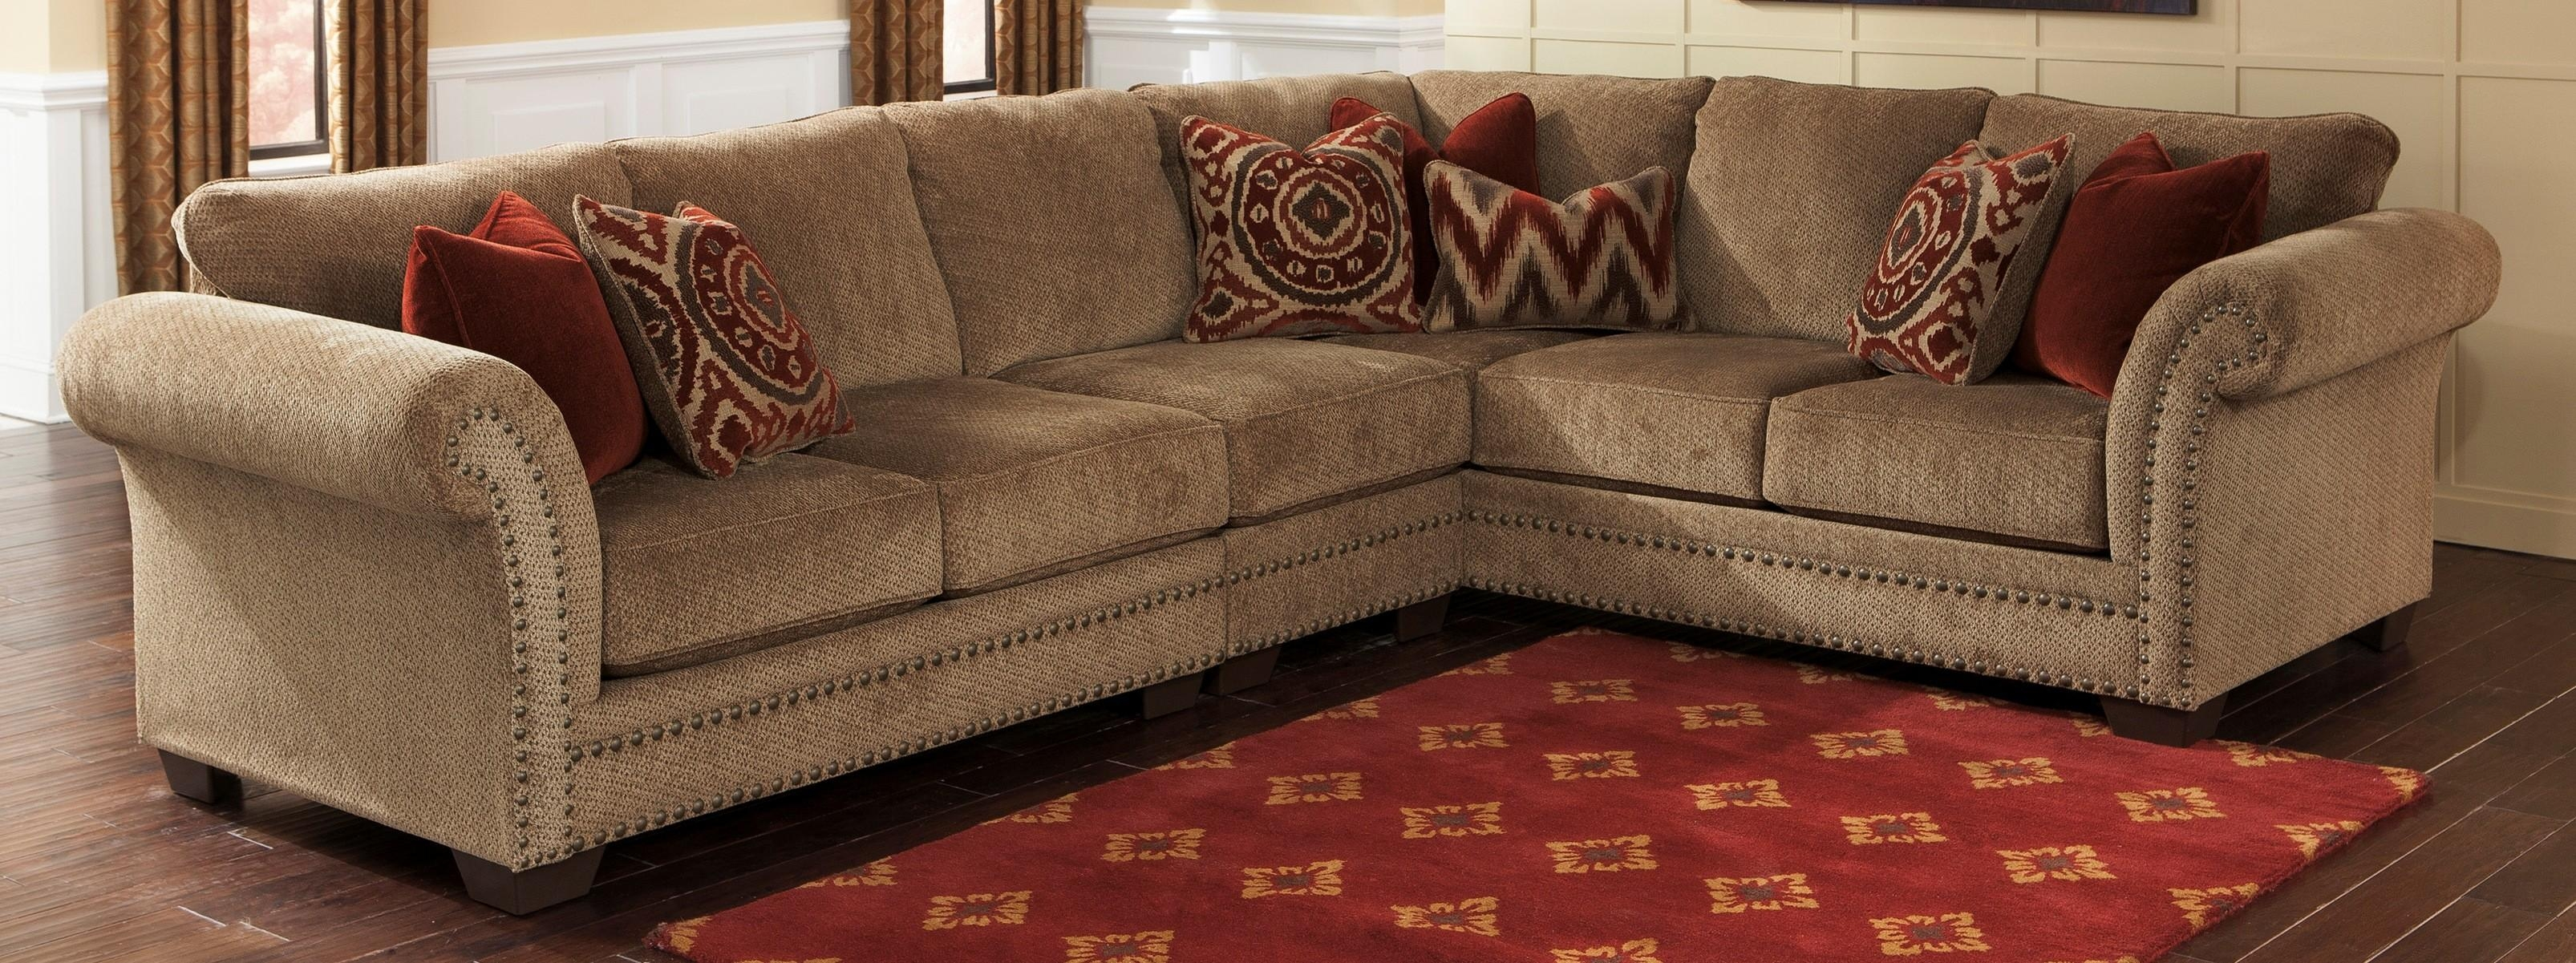 Decorating: Furniture Stunning Ashley Furniture Sectional Sofas In With Ashley Furniture Leather Sectional Sofas (View 17 of 20)